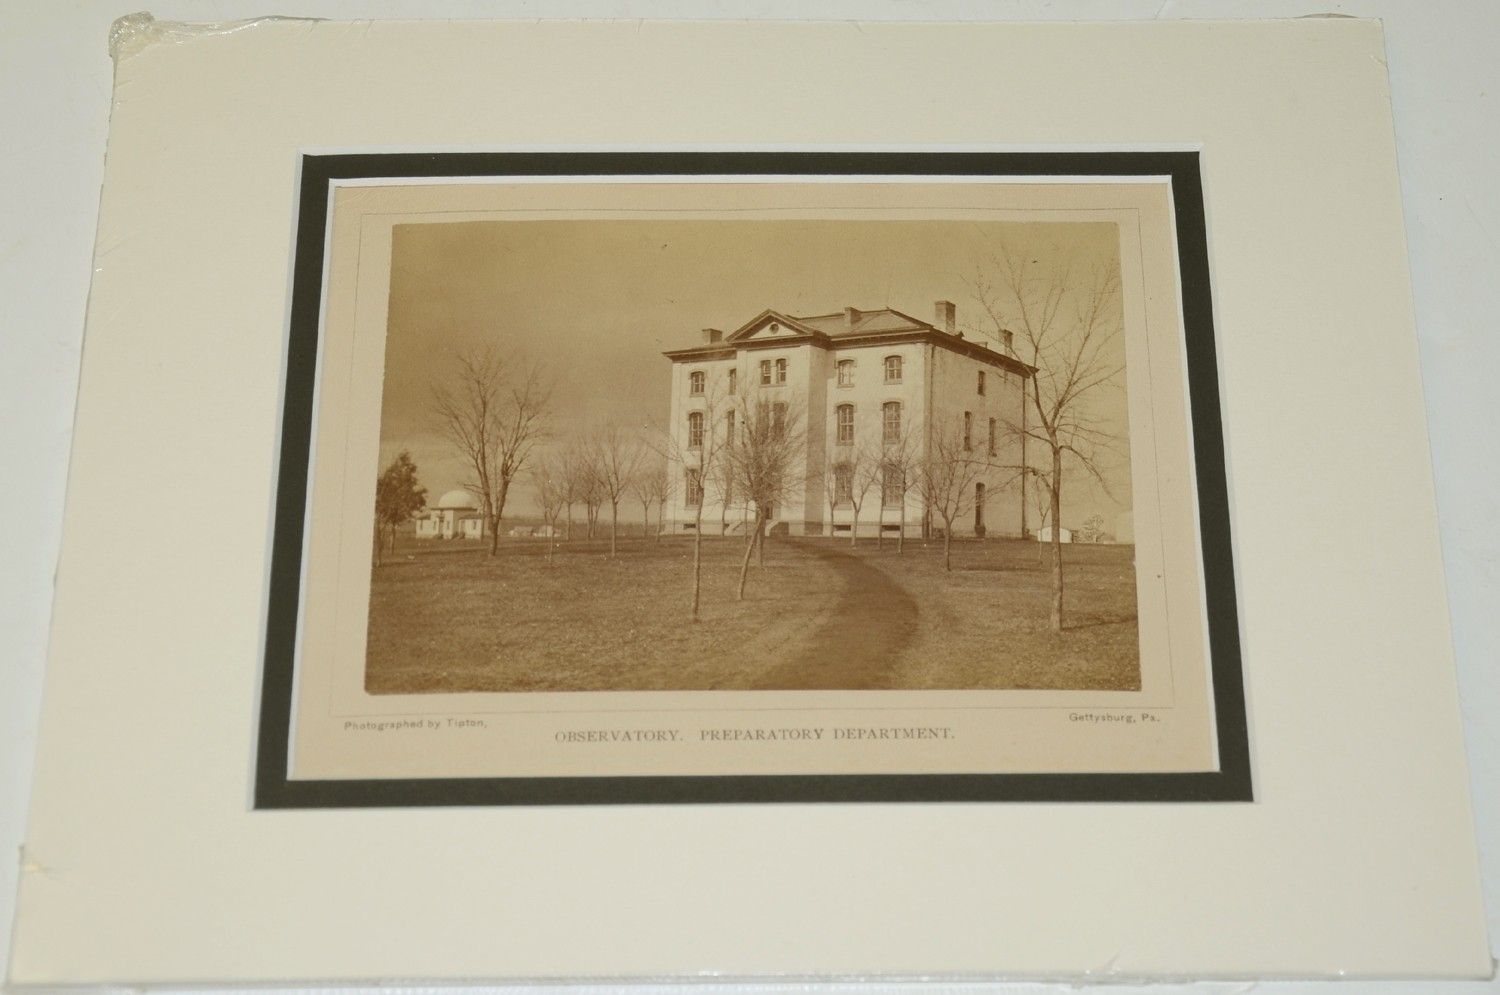 NICELY MATTED PHOTO OF THE OBSERVATORY AND PREPARATORY SCHOOL (NOW STEVENS HALL), GETTYSBURG COLLEGE